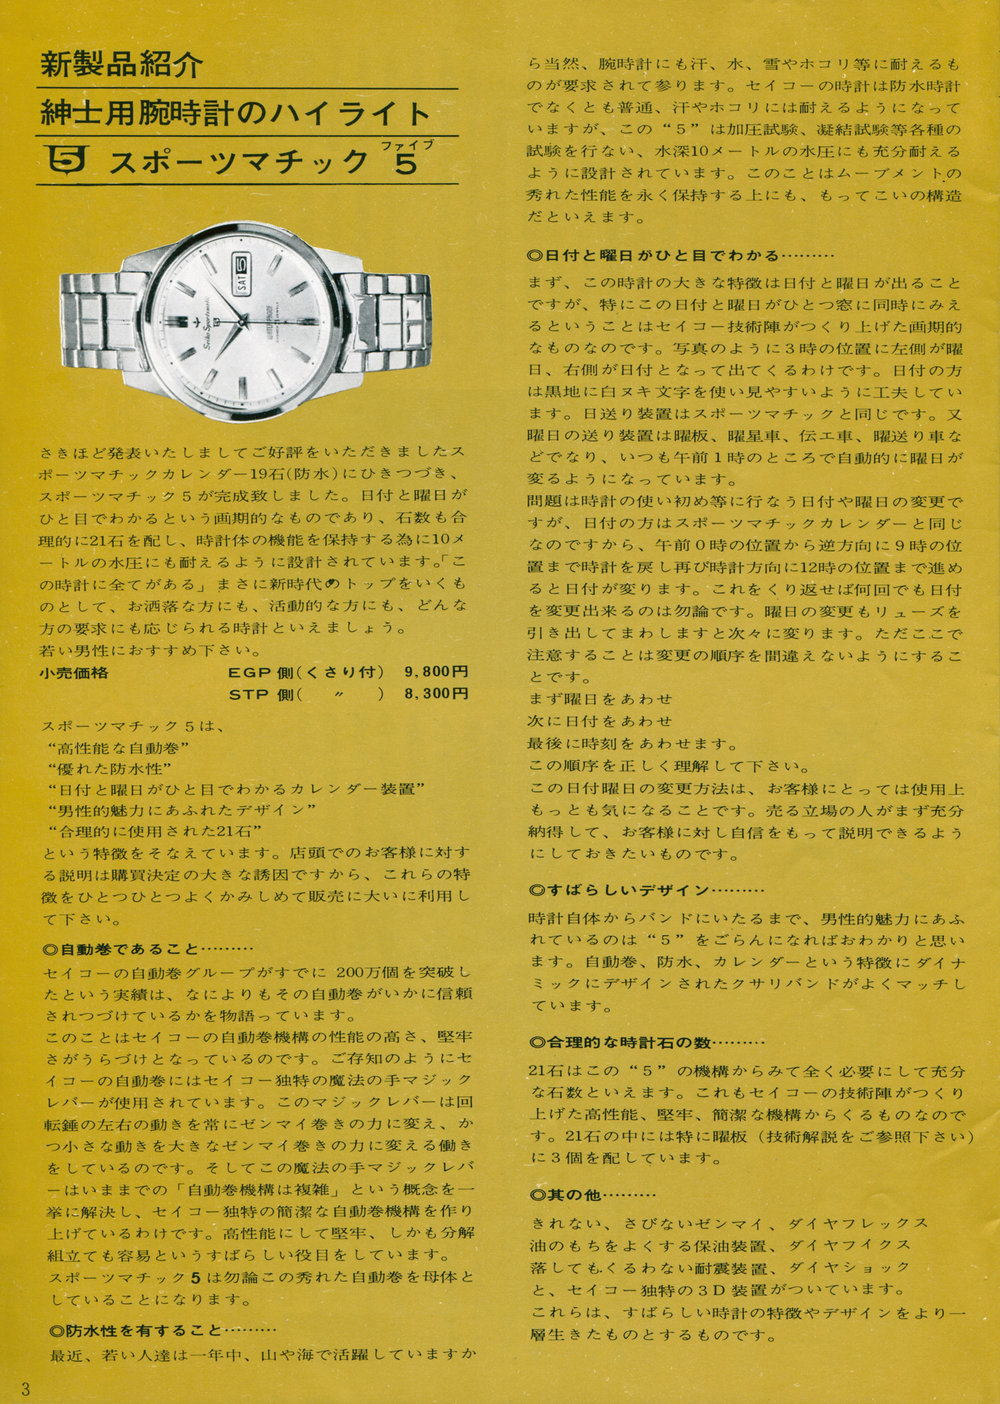 1963.09 Seiko News Article